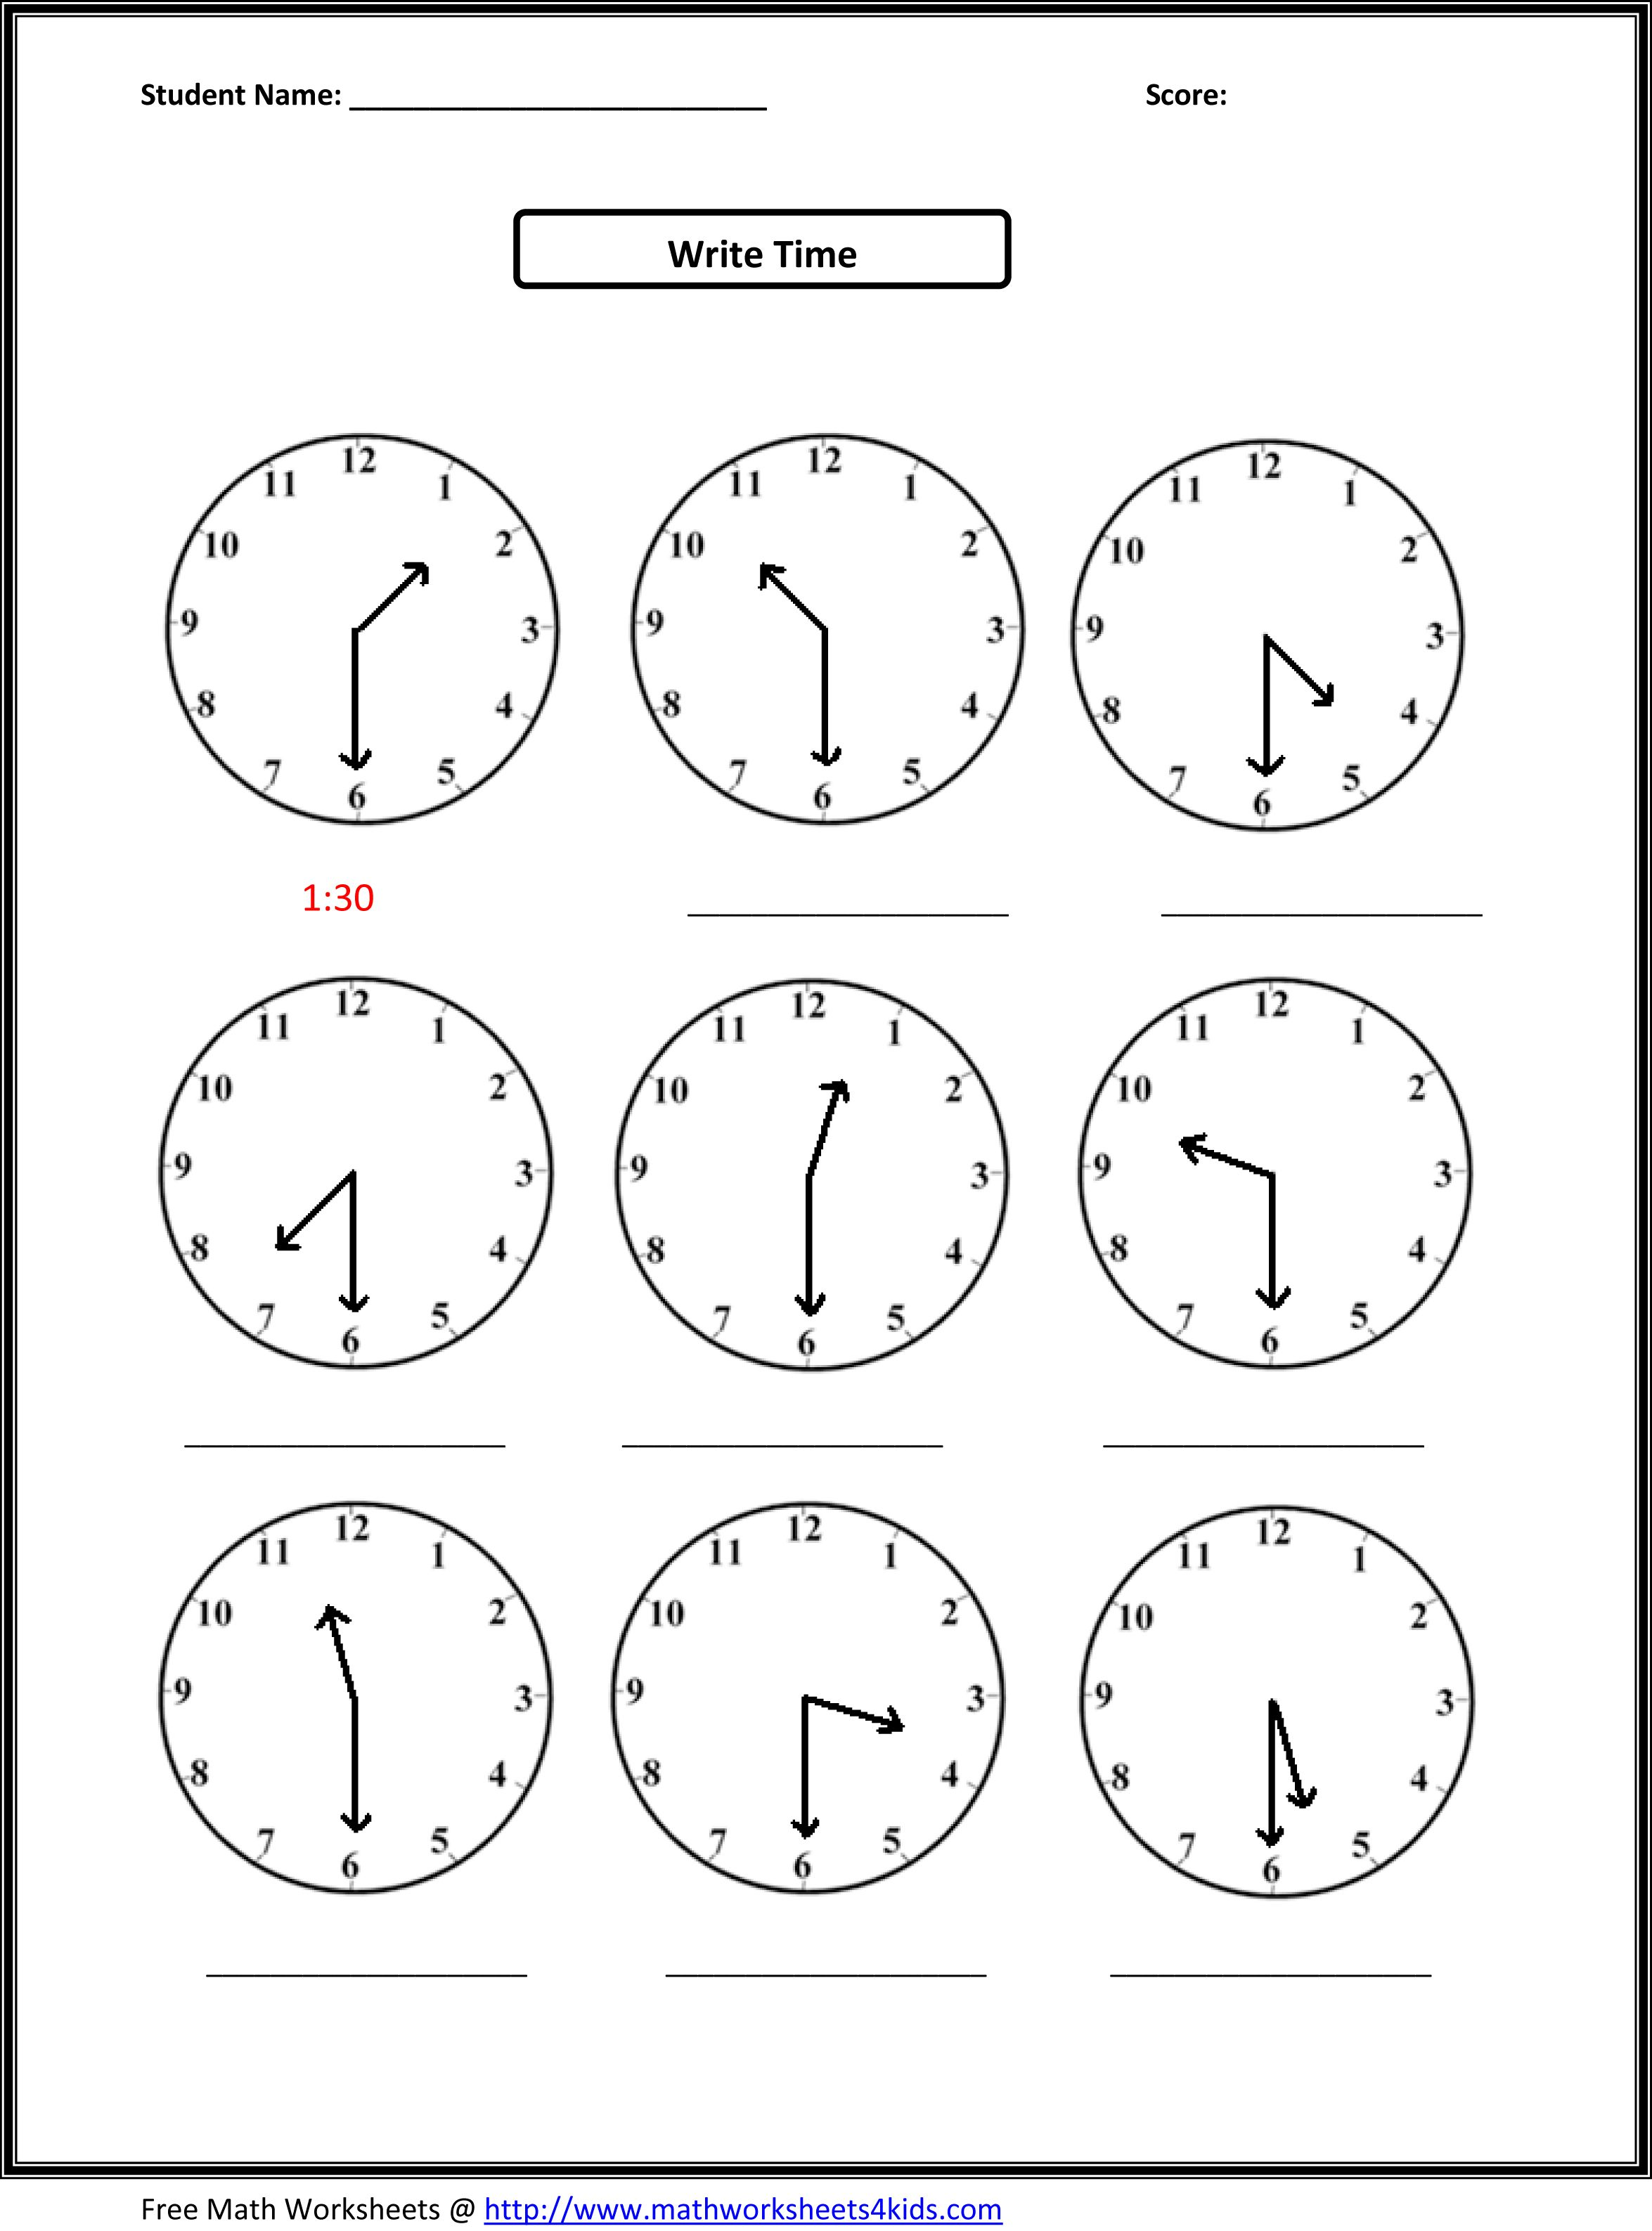 Proatmealus  Gorgeous Worksheet On Time For Grade   Reocurent With Remarkable Free Printable Telling Time Worksheets Nd Grade  Reocurent With Divine Adjective Order Worksheet Also Volume Of A Cylinder Worksheets In Addition Solving Simple Equations Worksheet And Mortgage Income Calculation Worksheet As Well As Layers Of The Earth Worksheets Middle School Additionally Area Of Parallelogram Worksheets From Reocurentcom With Proatmealus  Remarkable Worksheet On Time For Grade   Reocurent With Divine Free Printable Telling Time Worksheets Nd Grade  Reocurent And Gorgeous Adjective Order Worksheet Also Volume Of A Cylinder Worksheets In Addition Solving Simple Equations Worksheet From Reocurentcom